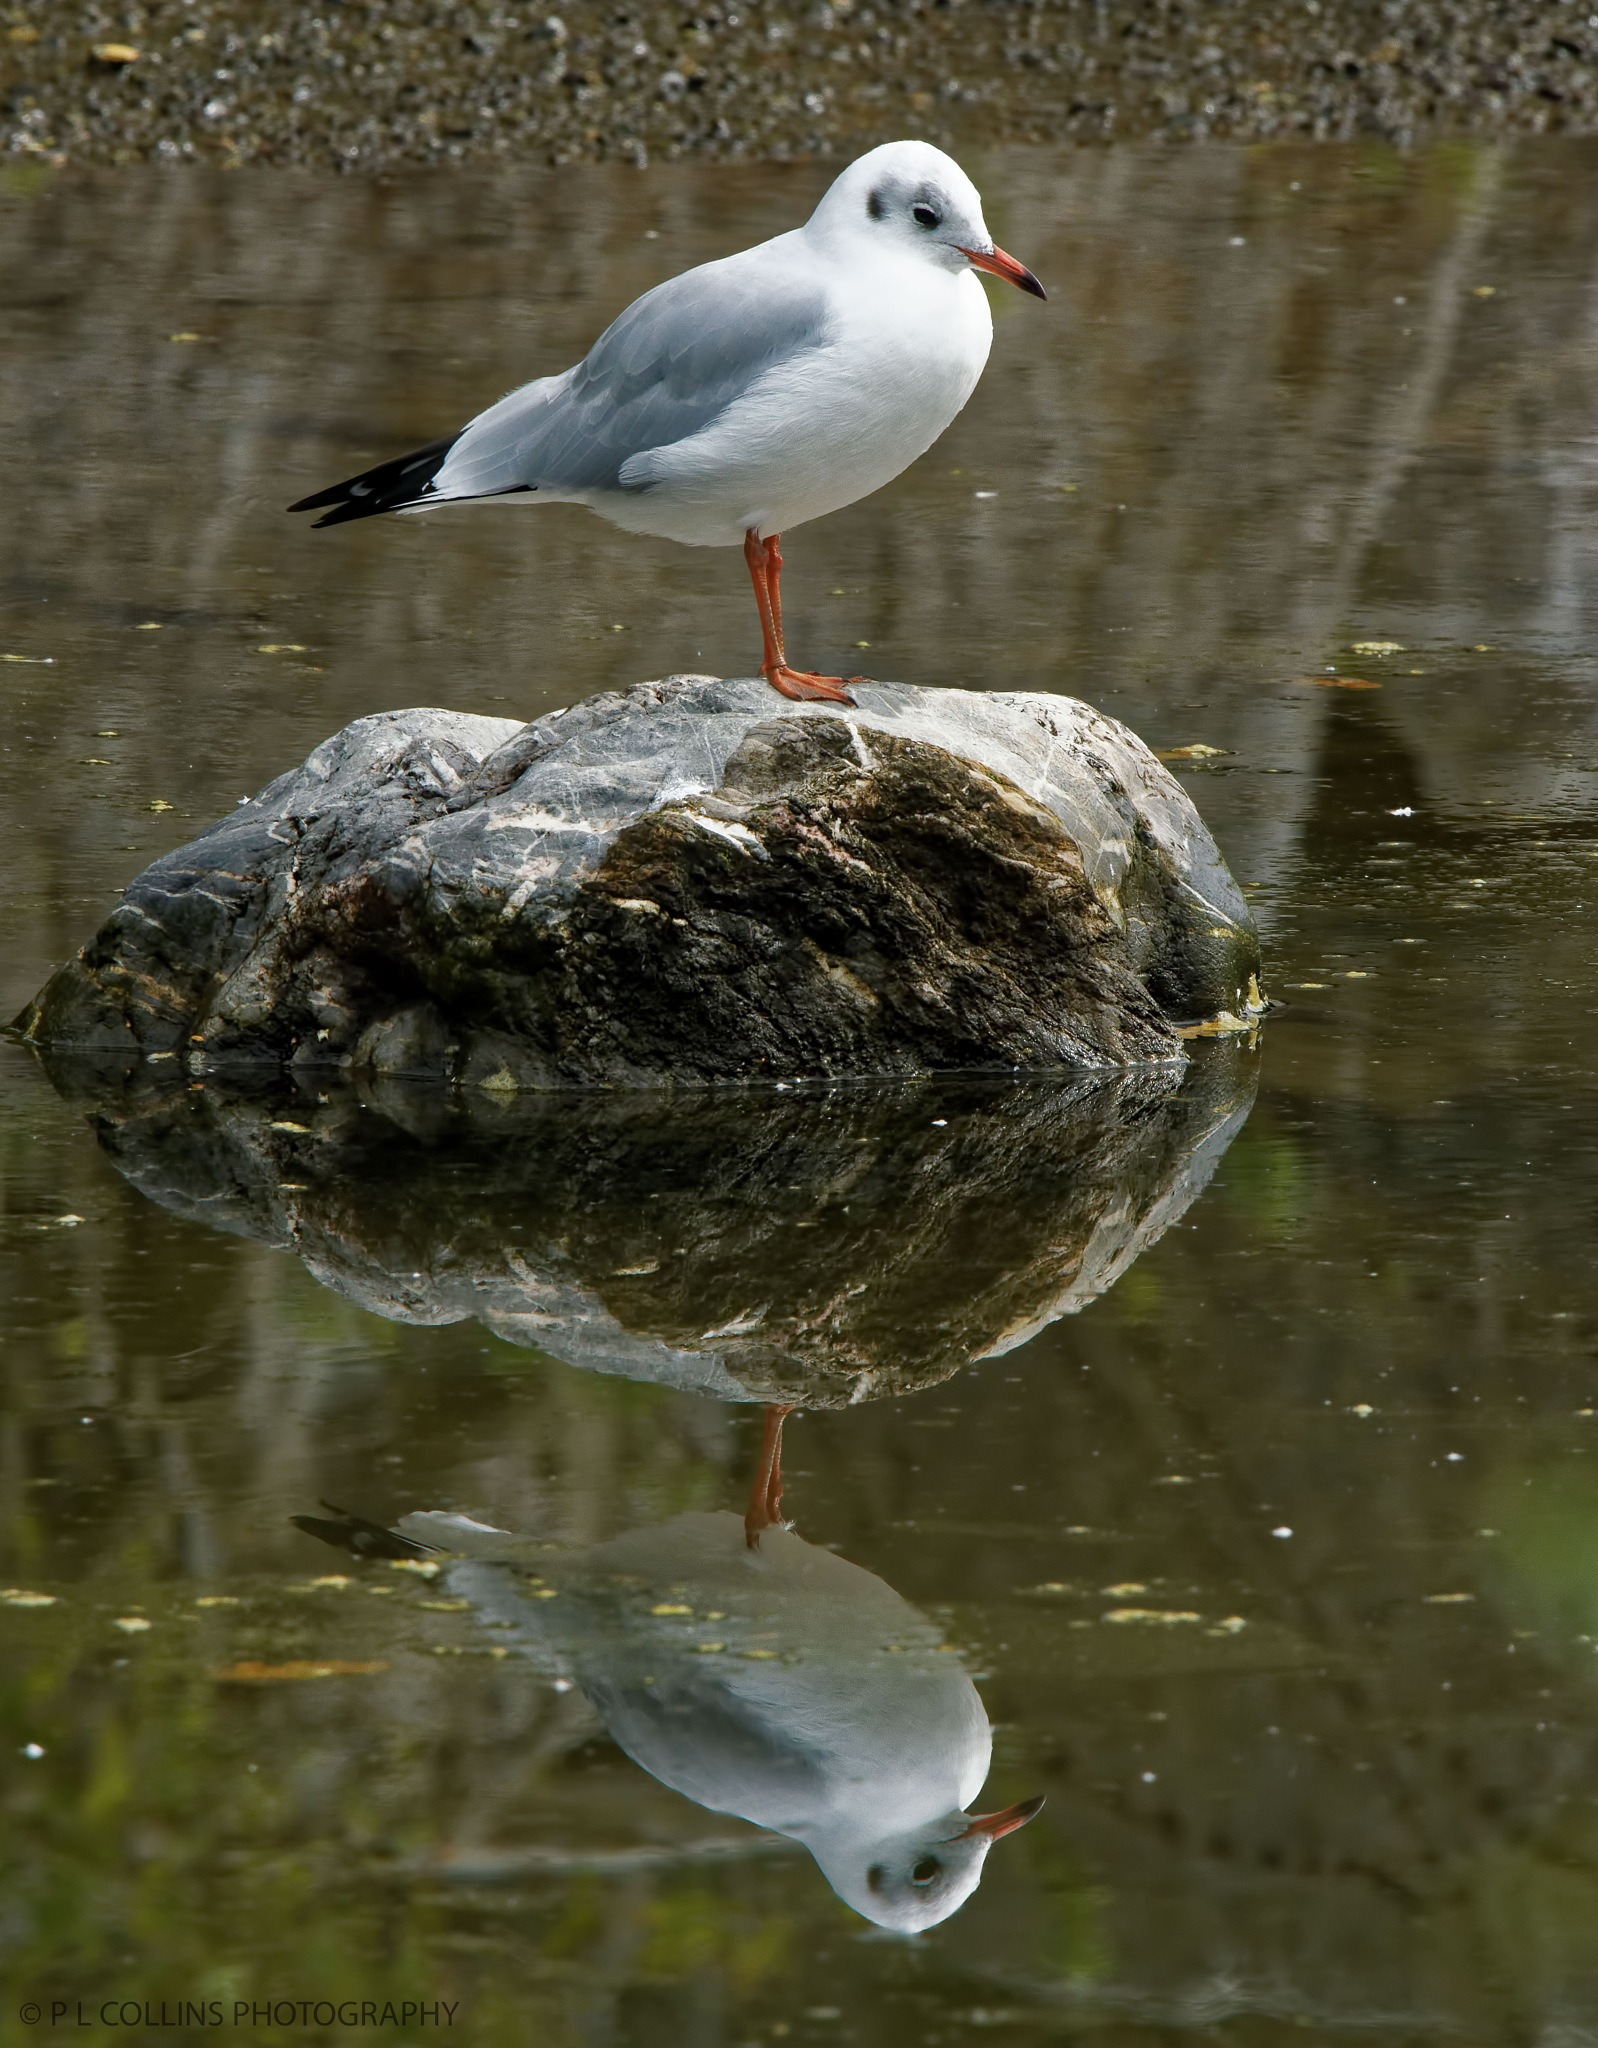 Black headed gull by Paul Collins